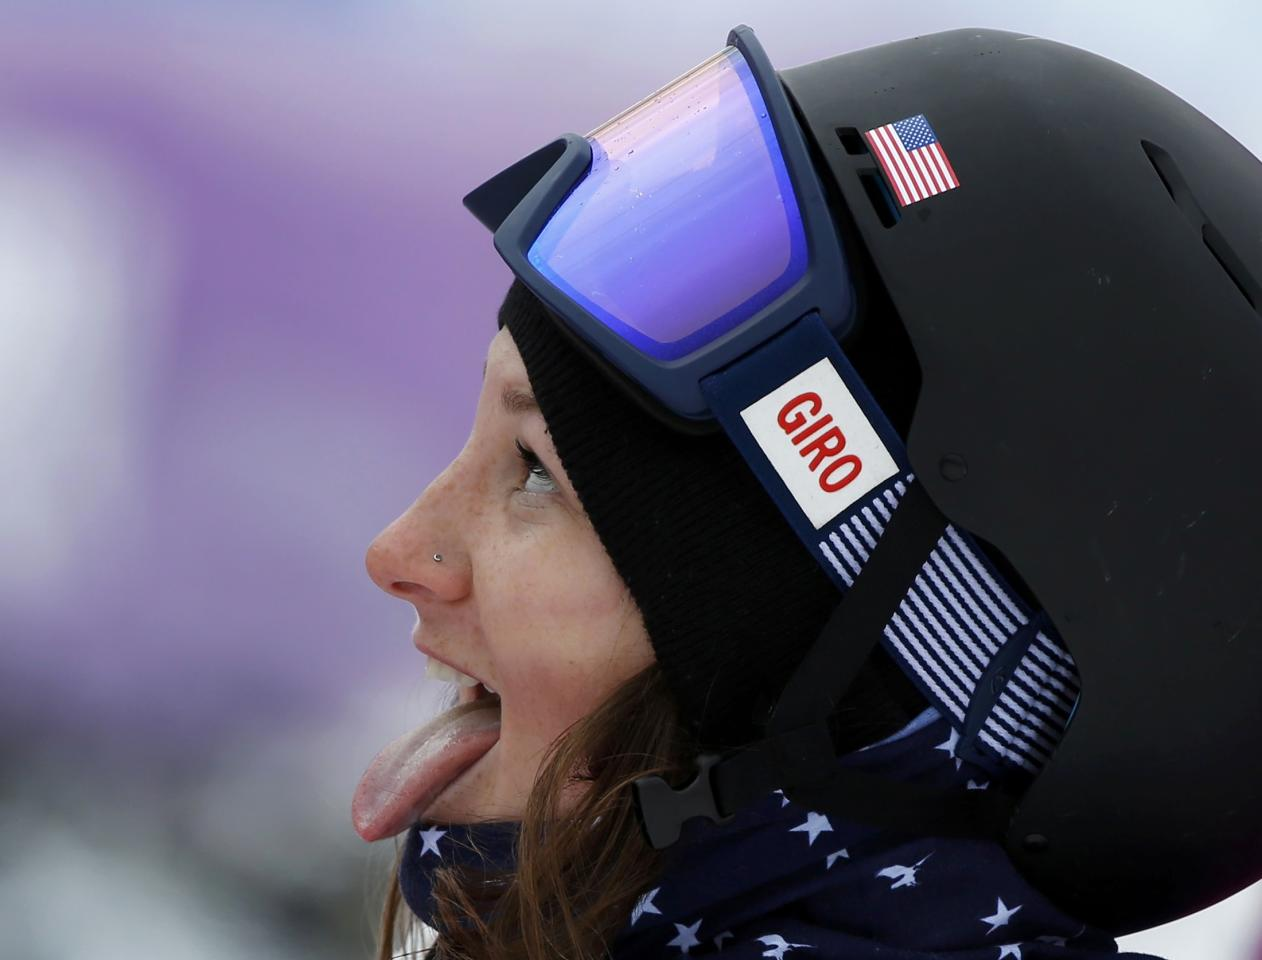 REFILE - CORRECTING DATE